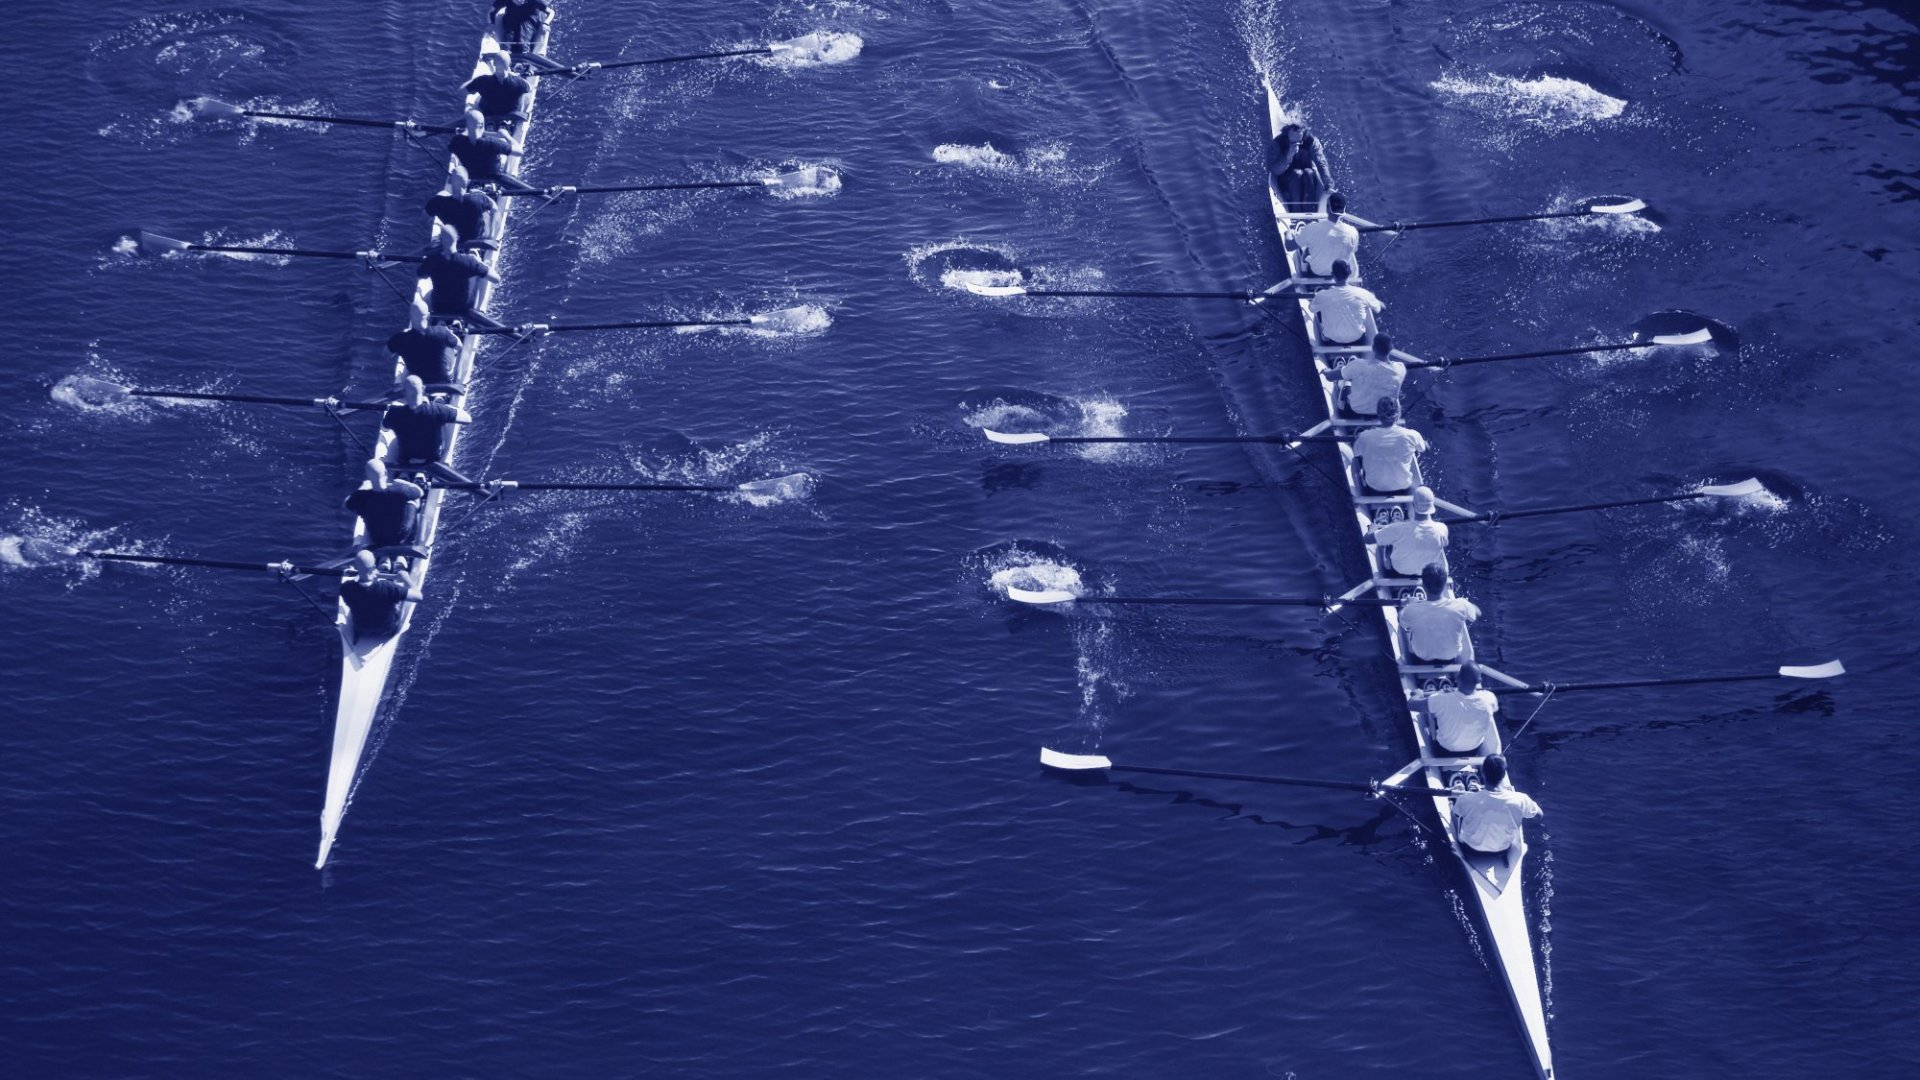 A Powerful Leadership Lesson From the Sport of Rowing